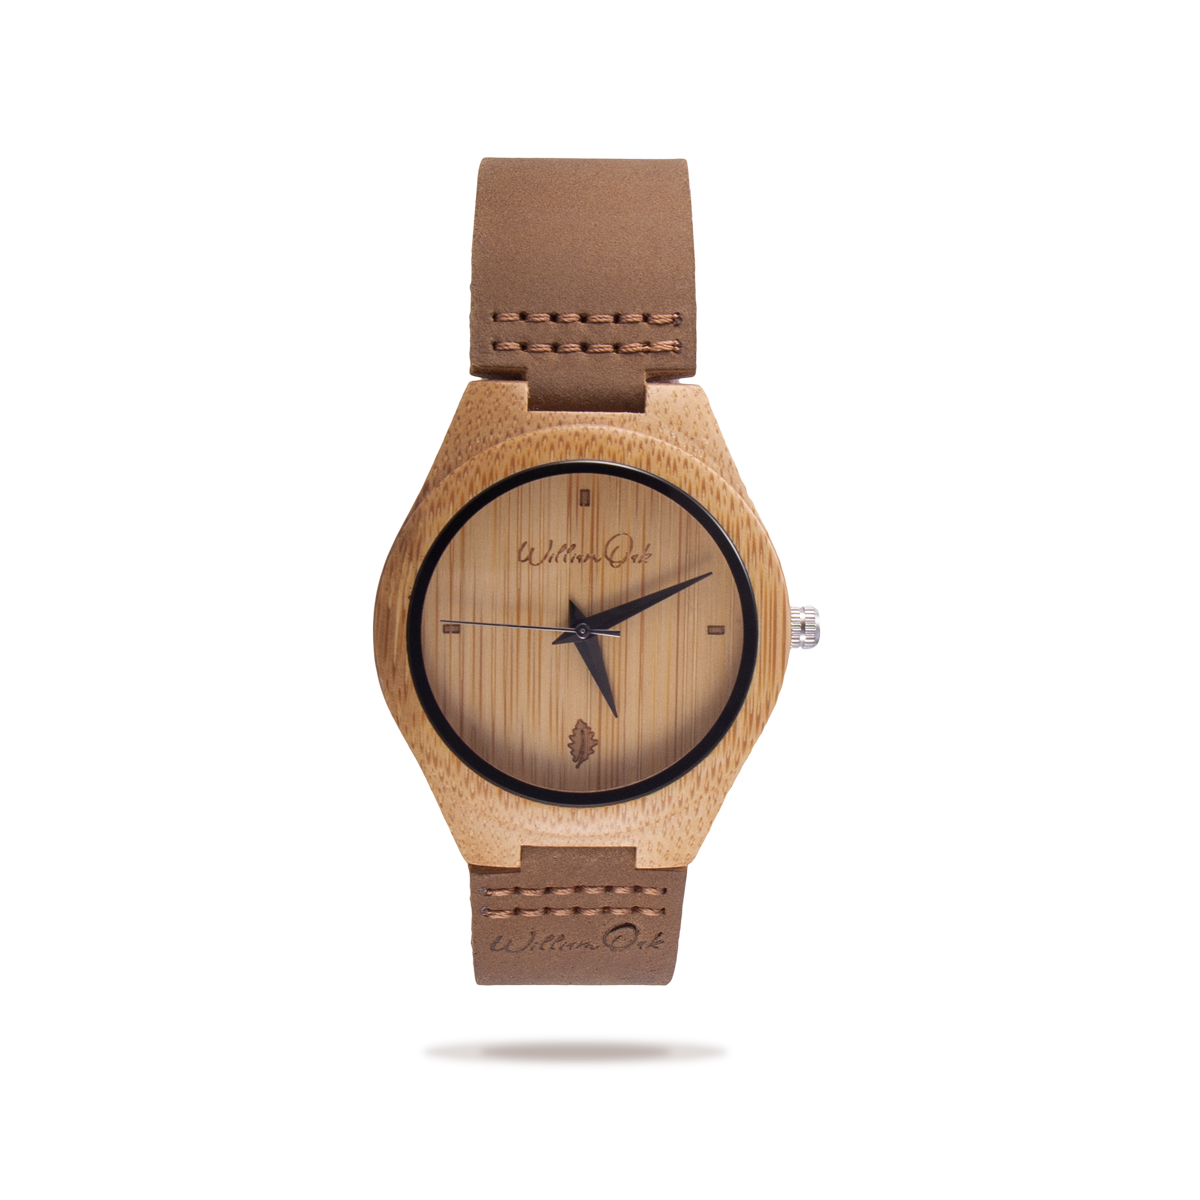 Reloj Bali [Bambú] - William Oak